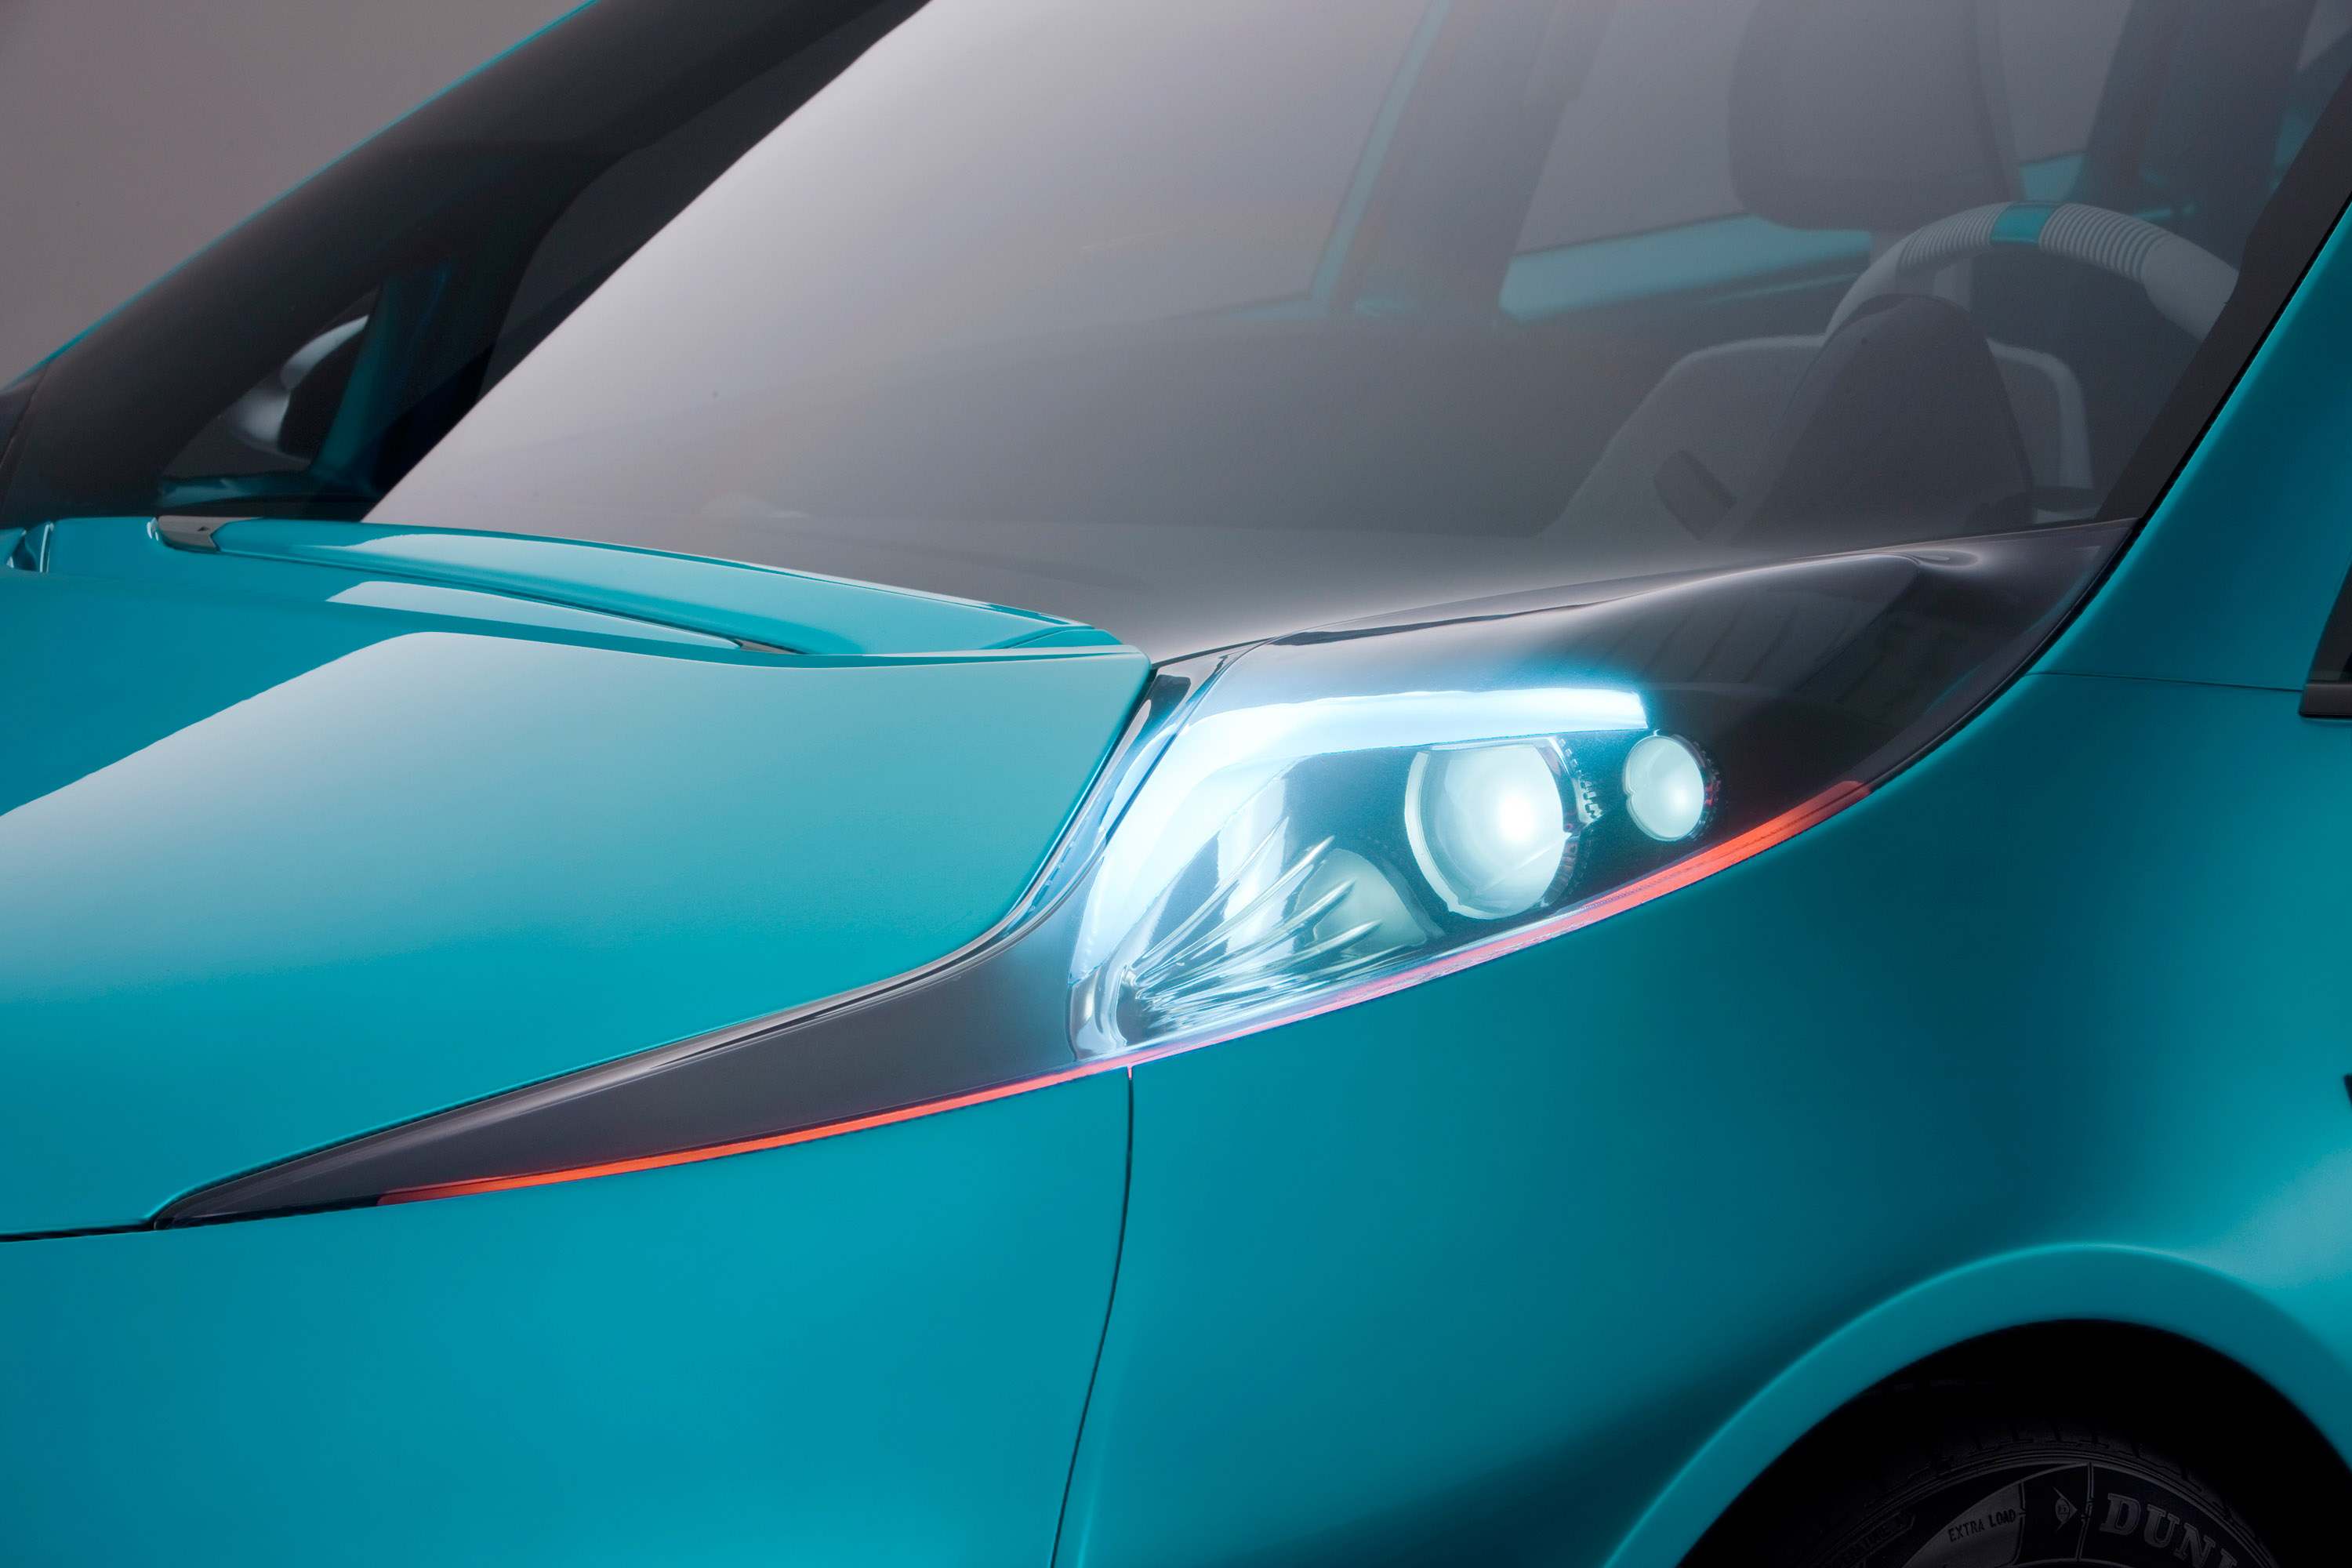 Toyota Prius Concept Cars Pictures & images